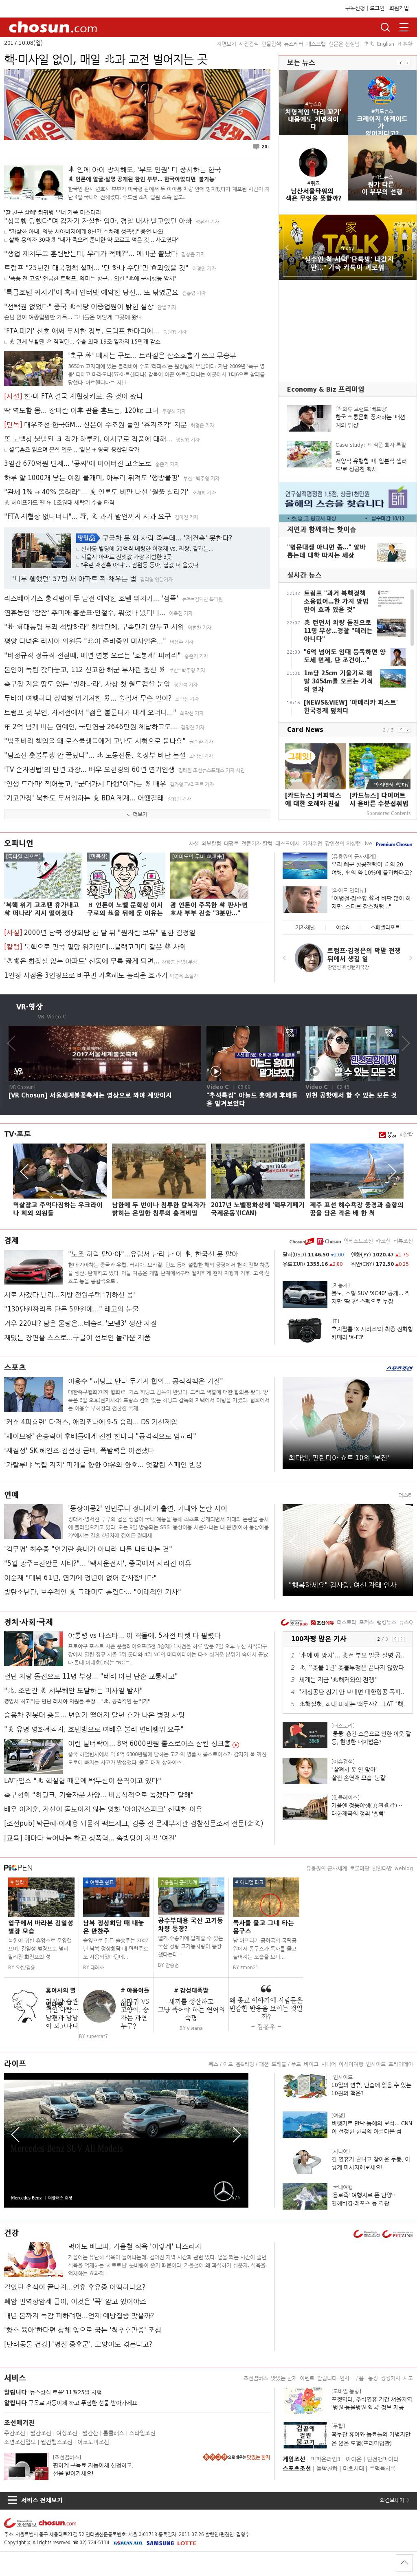 chosun.com at Saturday Oct. 7, 2017, 11:01 p.m. UTC